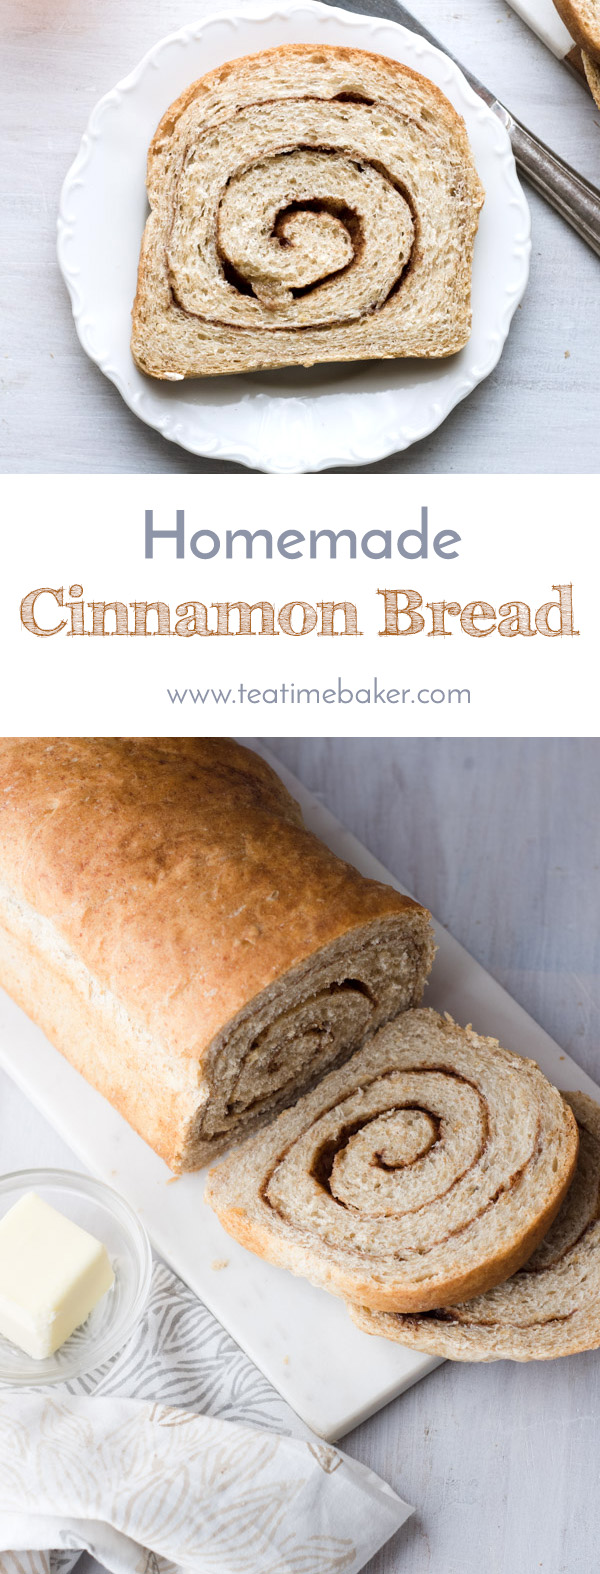 Bake your own homemade cinnamon bread with this quick and easy recipe. Soft and tender bread rolled up with a healthy dose of cinnamon and brown sugar - perfection! Vegan bread recipe. | The Teatime Baker | Easy Cinnamon Bread | Bread from scratch | #homemadecinnamonbreadrecipe #easyvegancinnamonbread